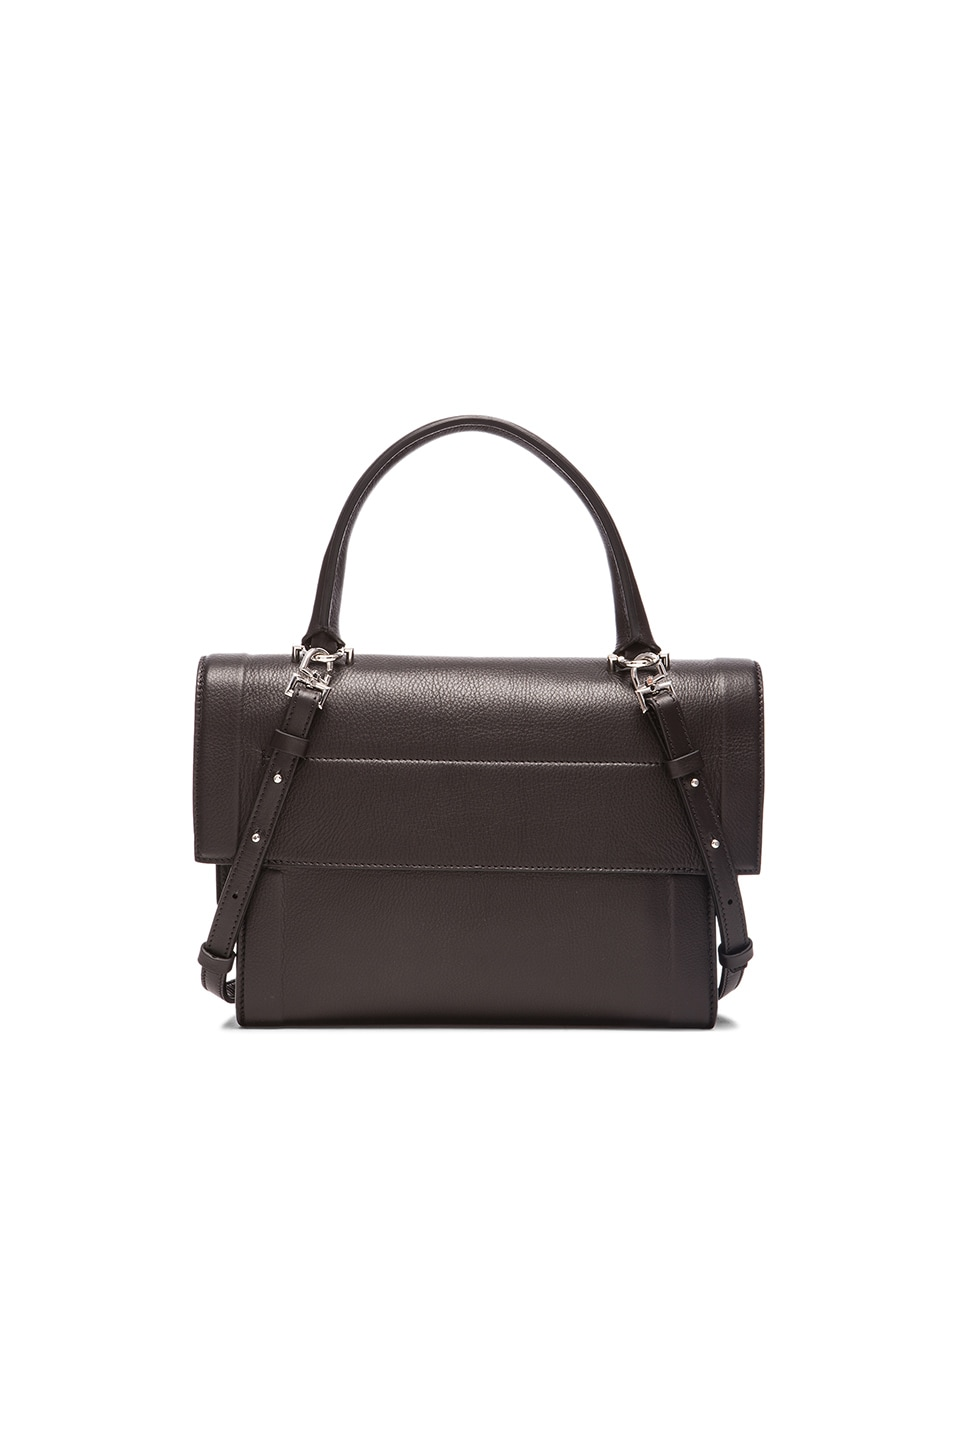 6094c7c559 Image 3 of Givenchy Small Shark in Black